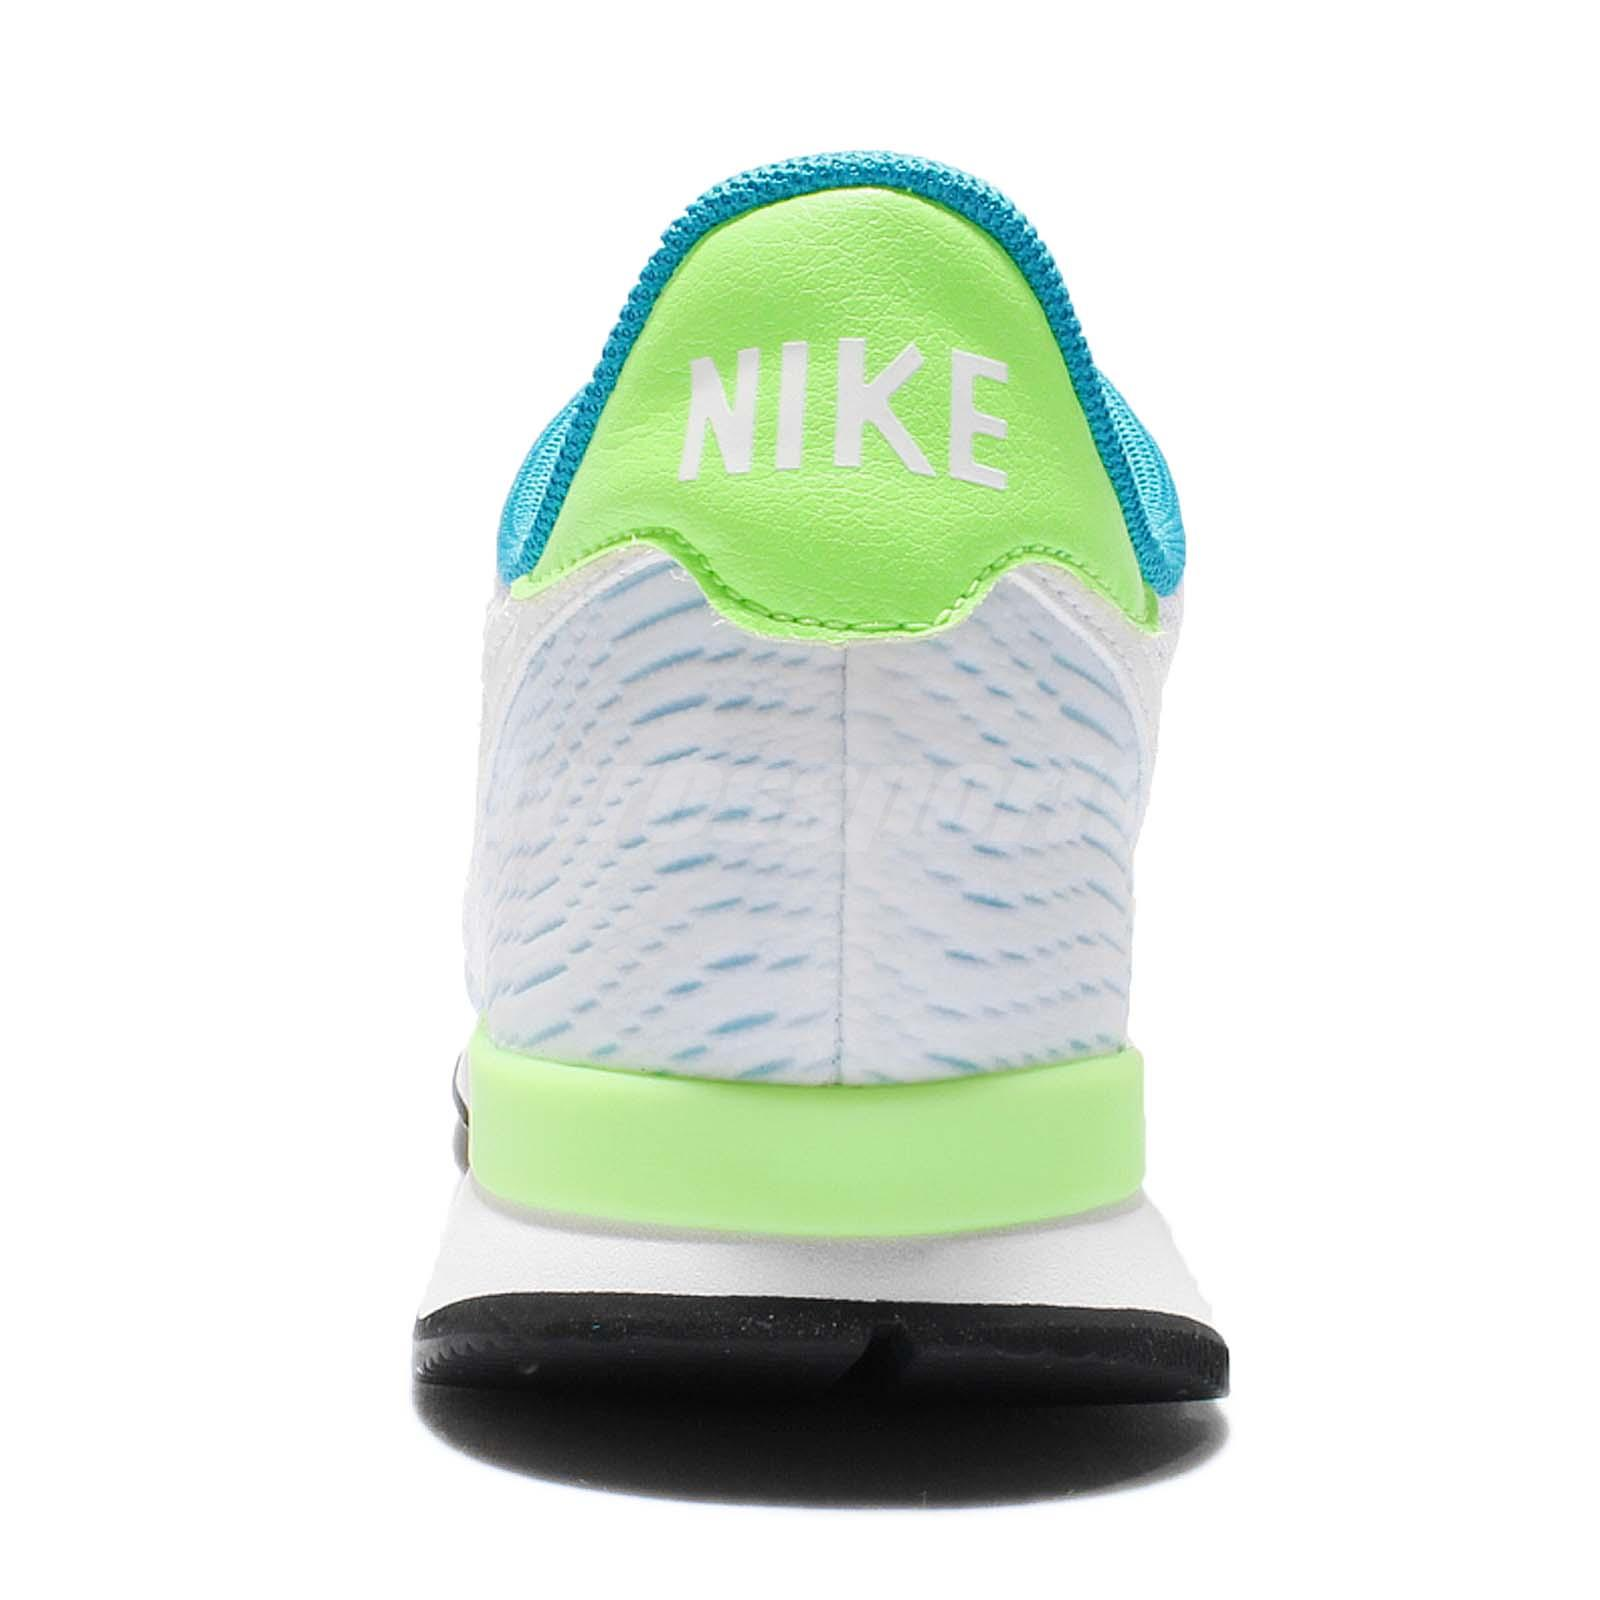 finest selection c494c 83db4 ... Condition Brand New With Box Image is loading NEW-WOMENS-8-5-NIKE- INTERNATIONALIST-WIM Canada Women s NIKE INTERNATIONALIST MID Carbon green  sq-bright ...